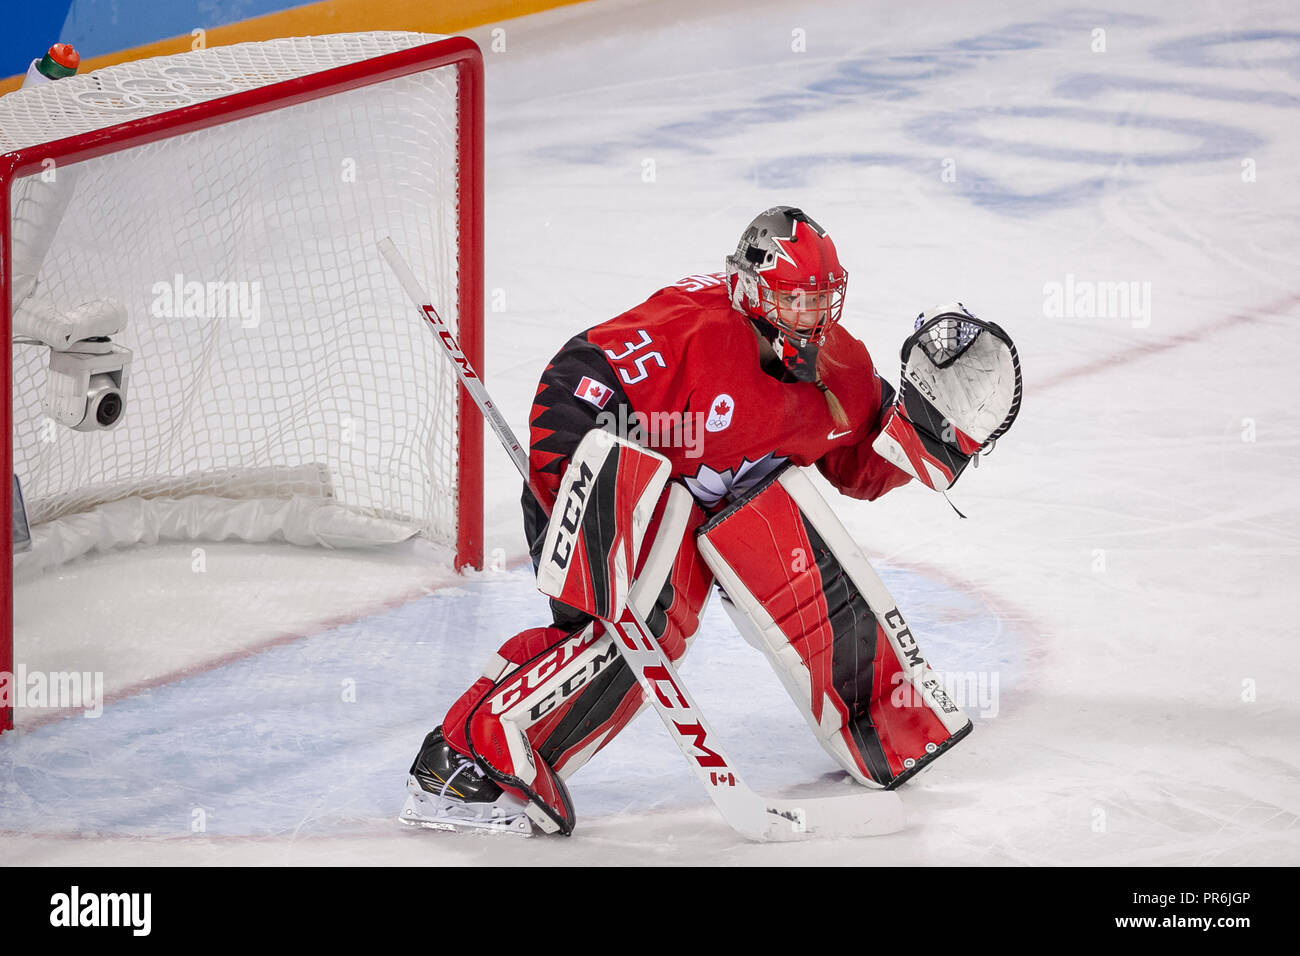 Goalie Ann-Renée Desbiens (CAN) during Team OAR vs Team Cananda competing in Women's hockey at the Olympic Winter Games PyeongChang 2018 - Stock Image